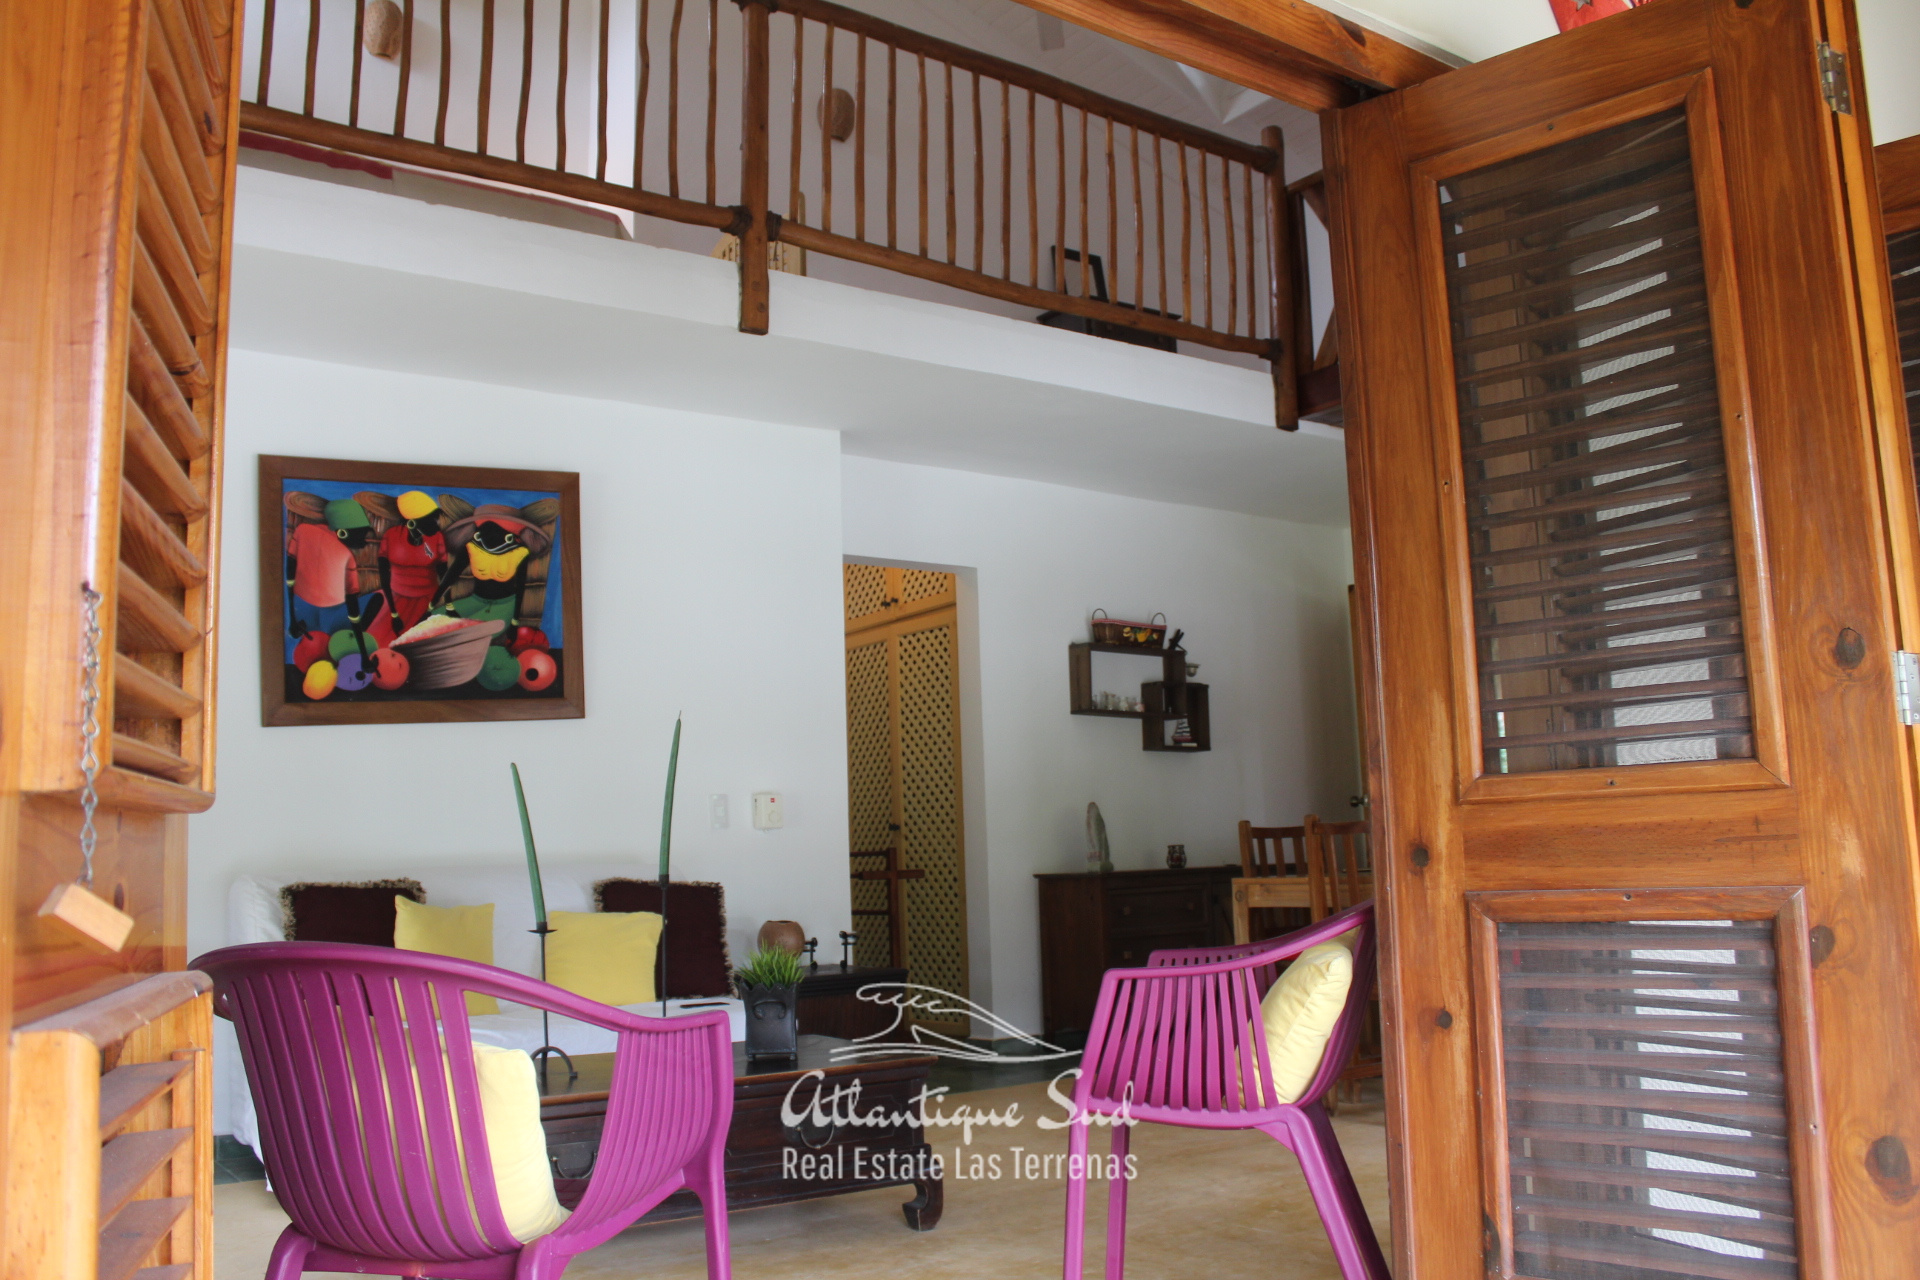 For-sale-Apartment-in-beachfront-community-with-mezzanine-Las-Terrenas_4822 (1).JPG